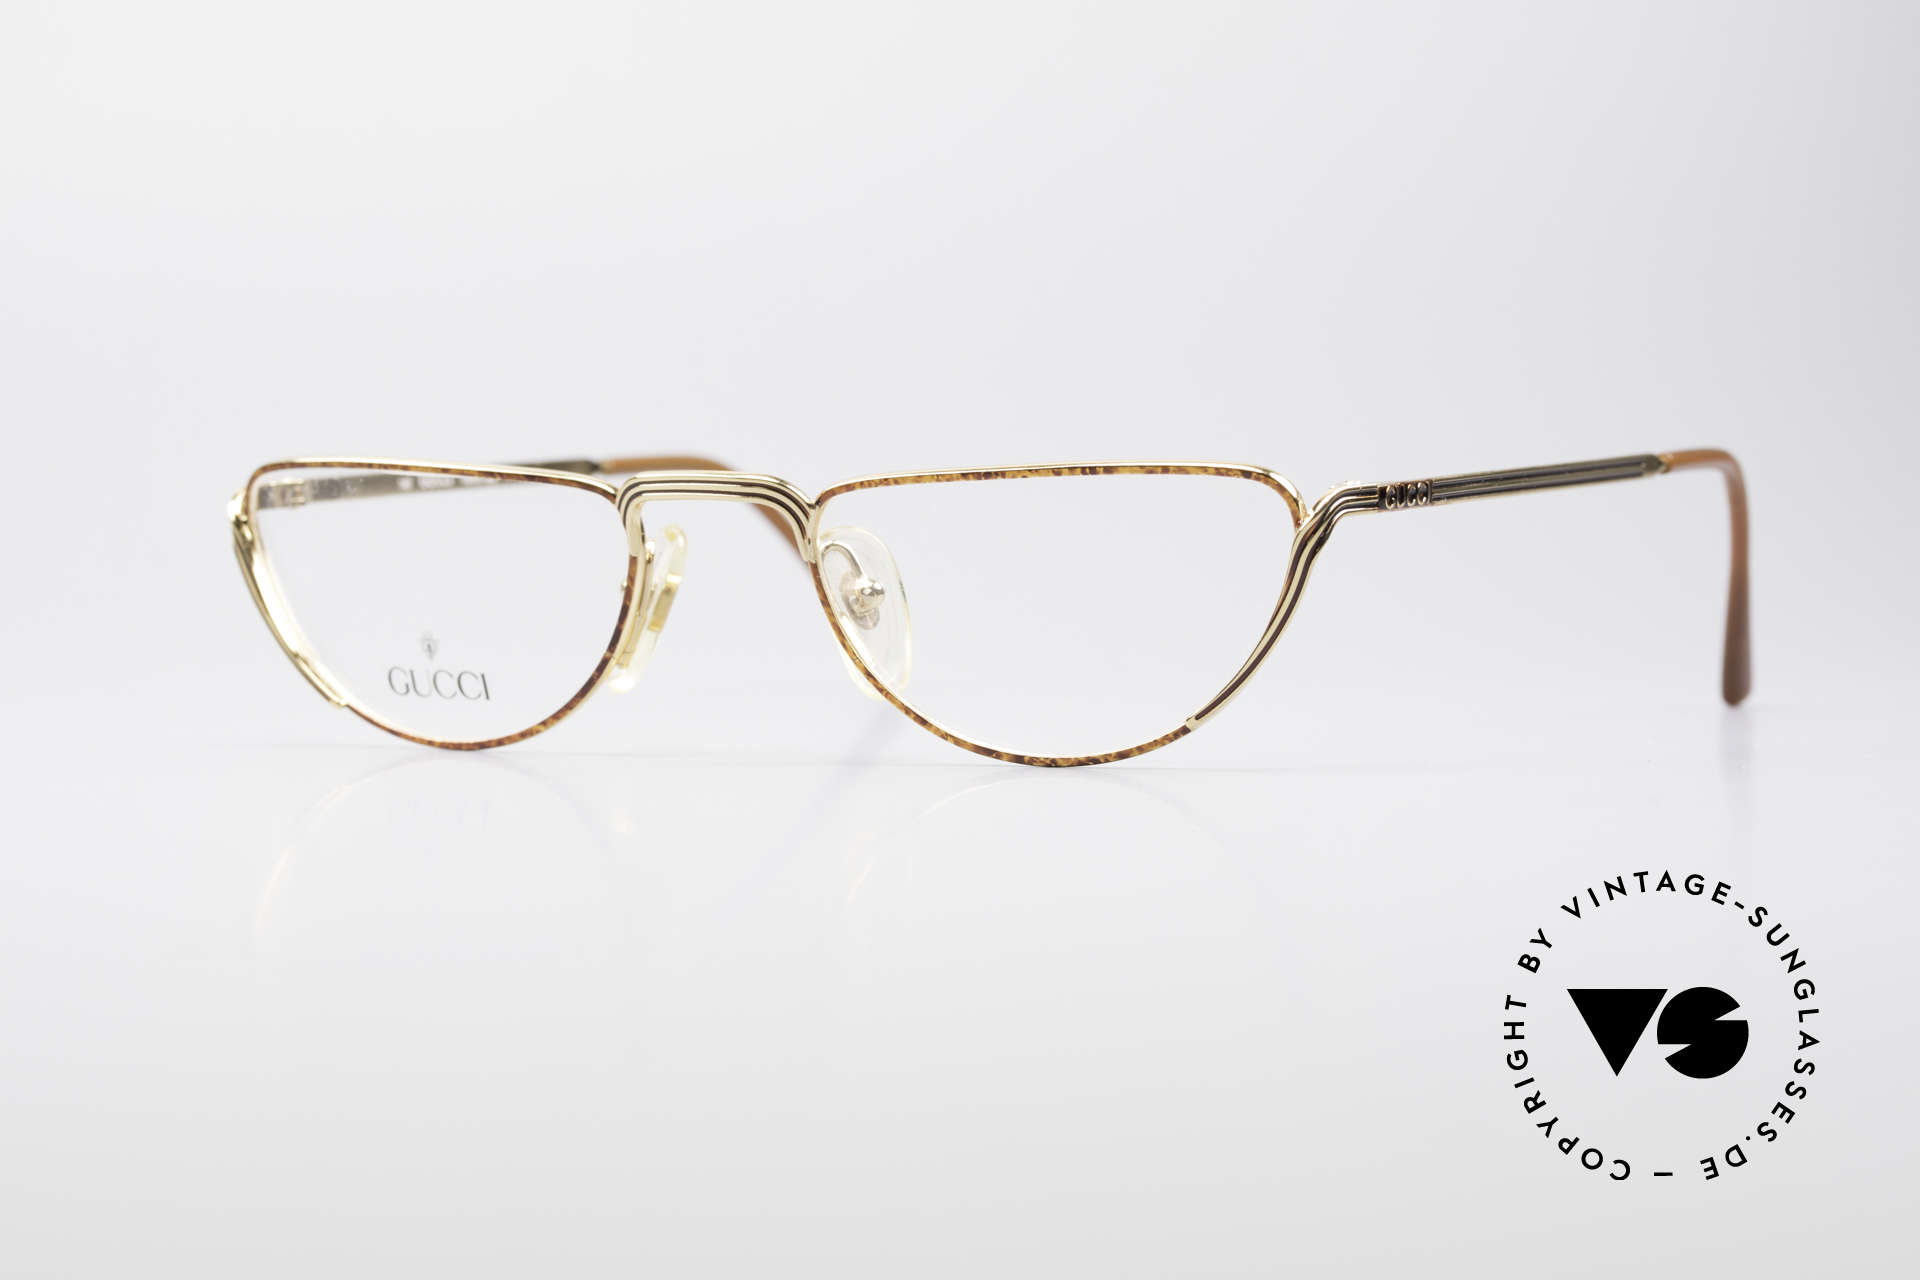 Gucci 2203 Vintage Reading Glasses 80's, vintage designer reading glasses from the 80's, Made for Men and Women